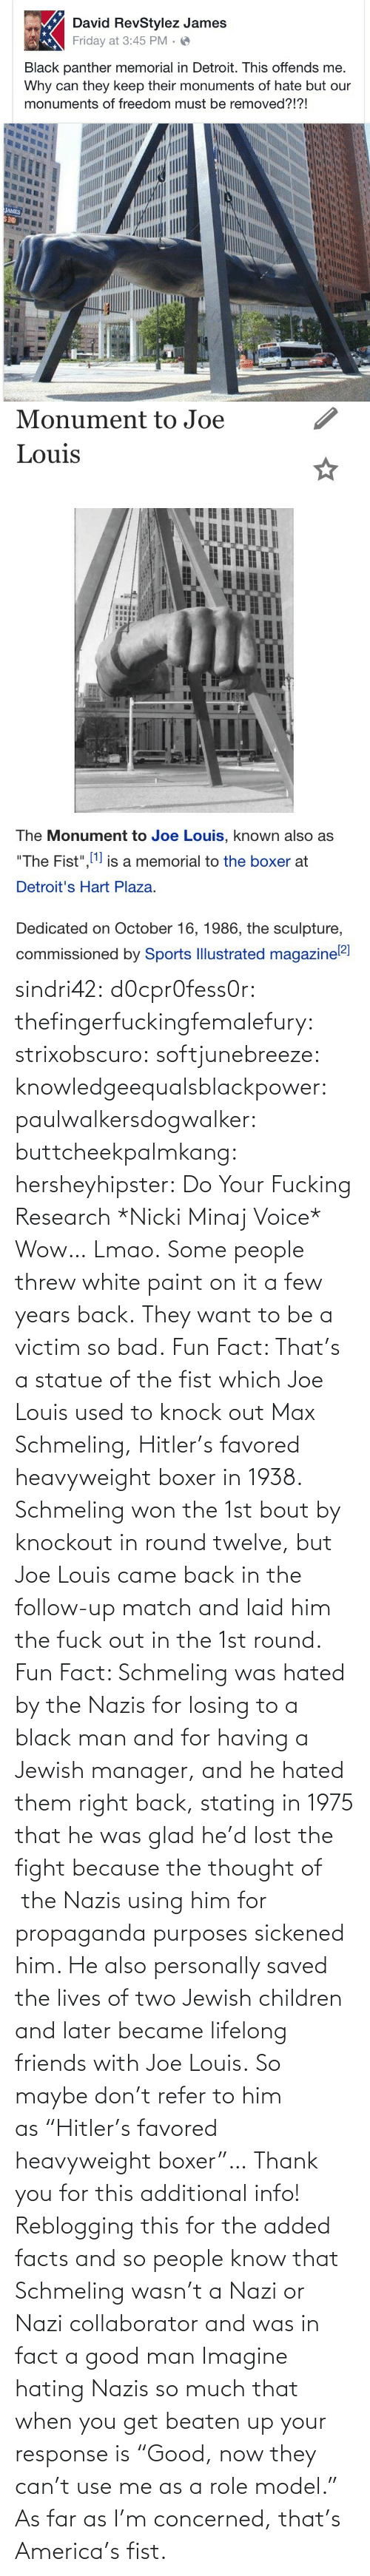 "fact: sindri42:  d0cpr0fess0r:  thefingerfuckingfemalefury:  strixobscuro:  softjunebreeze:  knowledgeequalsblackpower:  paulwalkersdogwalker:   buttcheekpalmkang:   hersheyhipster:  Do Your Fucking Research *Nicki Minaj Voice*    Wow… Lmao.   Some people threw white paint on it a few years back.   They want to be a victim so bad.  Fun Fact: That's a statue of the fist which Joe Louis used to knock out Max Schmeling, Hitler's favored heavyweight boxer in 1938. Schmeling won the 1st bout by knockout in round twelve, but Joe Louis came back in the follow-up match and laid him the fuck out in the 1st round.  Fun Fact: Schmeling was hated by the Nazis for losing to a black man and for having a Jewish manager, and he hated them right back, stating in 1975 that he was glad he'd lost the fight because the thought of  the Nazis using him for propaganda purposes sickened him. He also personally saved the lives of two Jewish children and later became lifelong friends with Joe Louis. So maybe don't refer to him as ""Hitler's favored heavyweight boxer""…  Thank you for this additional info! Reblogging this for the added facts and so people know that Schmeling wasn't a Nazi or Nazi collaborator and was in fact a good man   Imagine hating Nazis so much that when you get beaten up your response is ""Good, now they can't use me as a role model.""  As far as I'm concerned, that's America's fist."